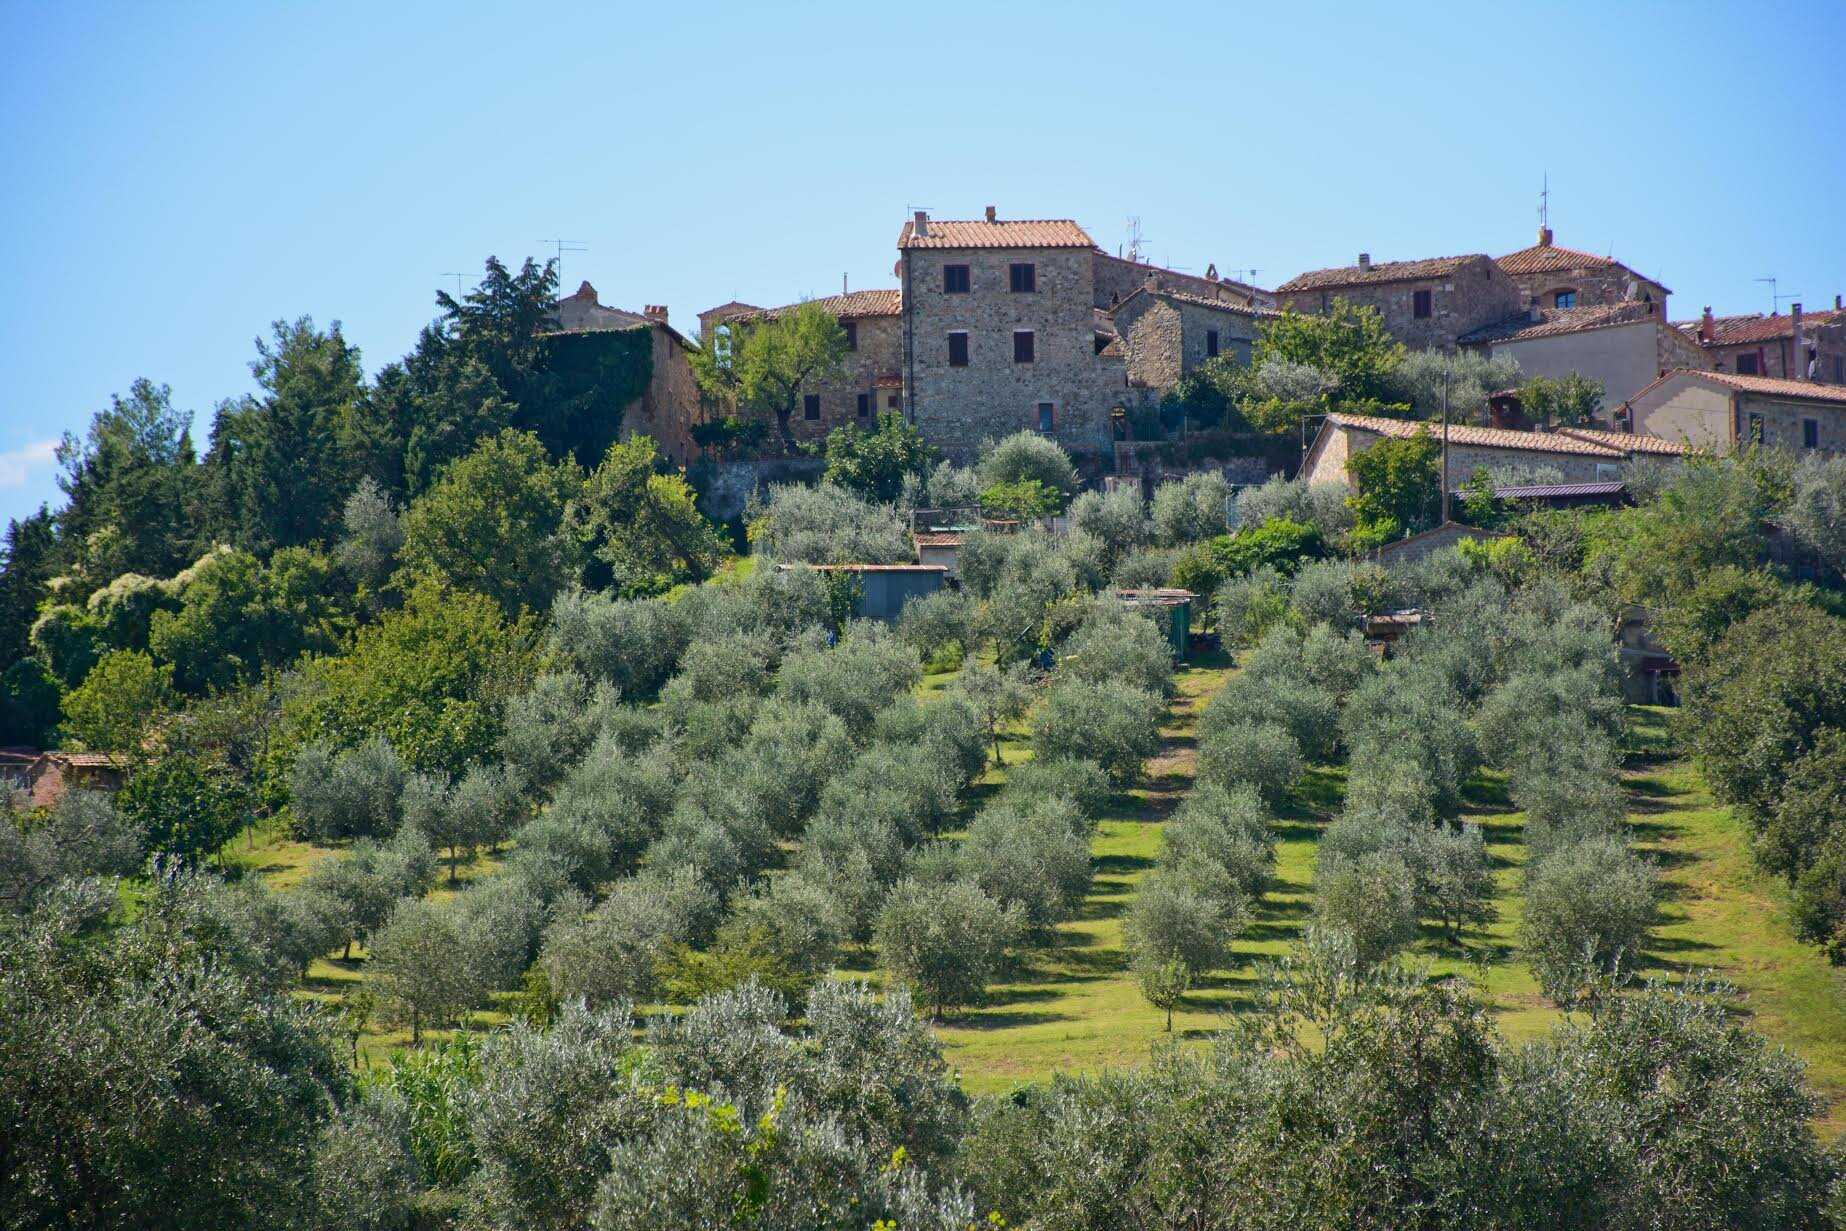 Village of Contignano behind Giuseppe's olive orchard. Oh I'm seeing so many painterly views!